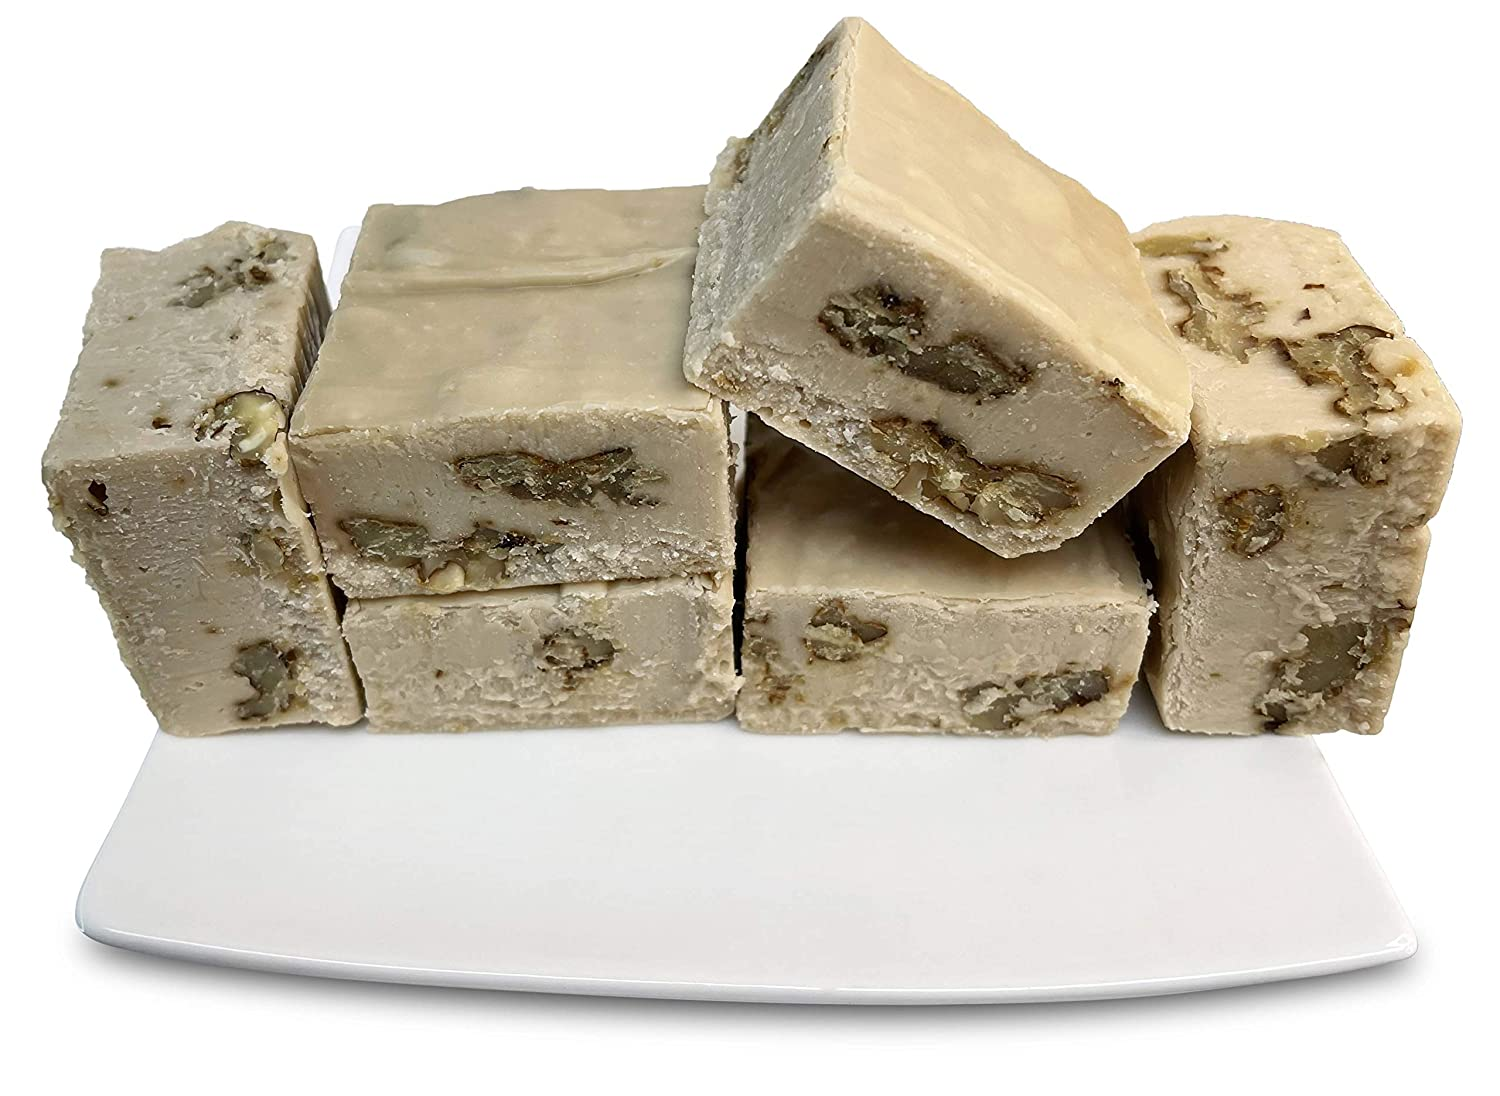 Max 89% OFF Andy Anand Surprise price Sugar Free Caramel Co Pecan Traditionally Fudge Slow